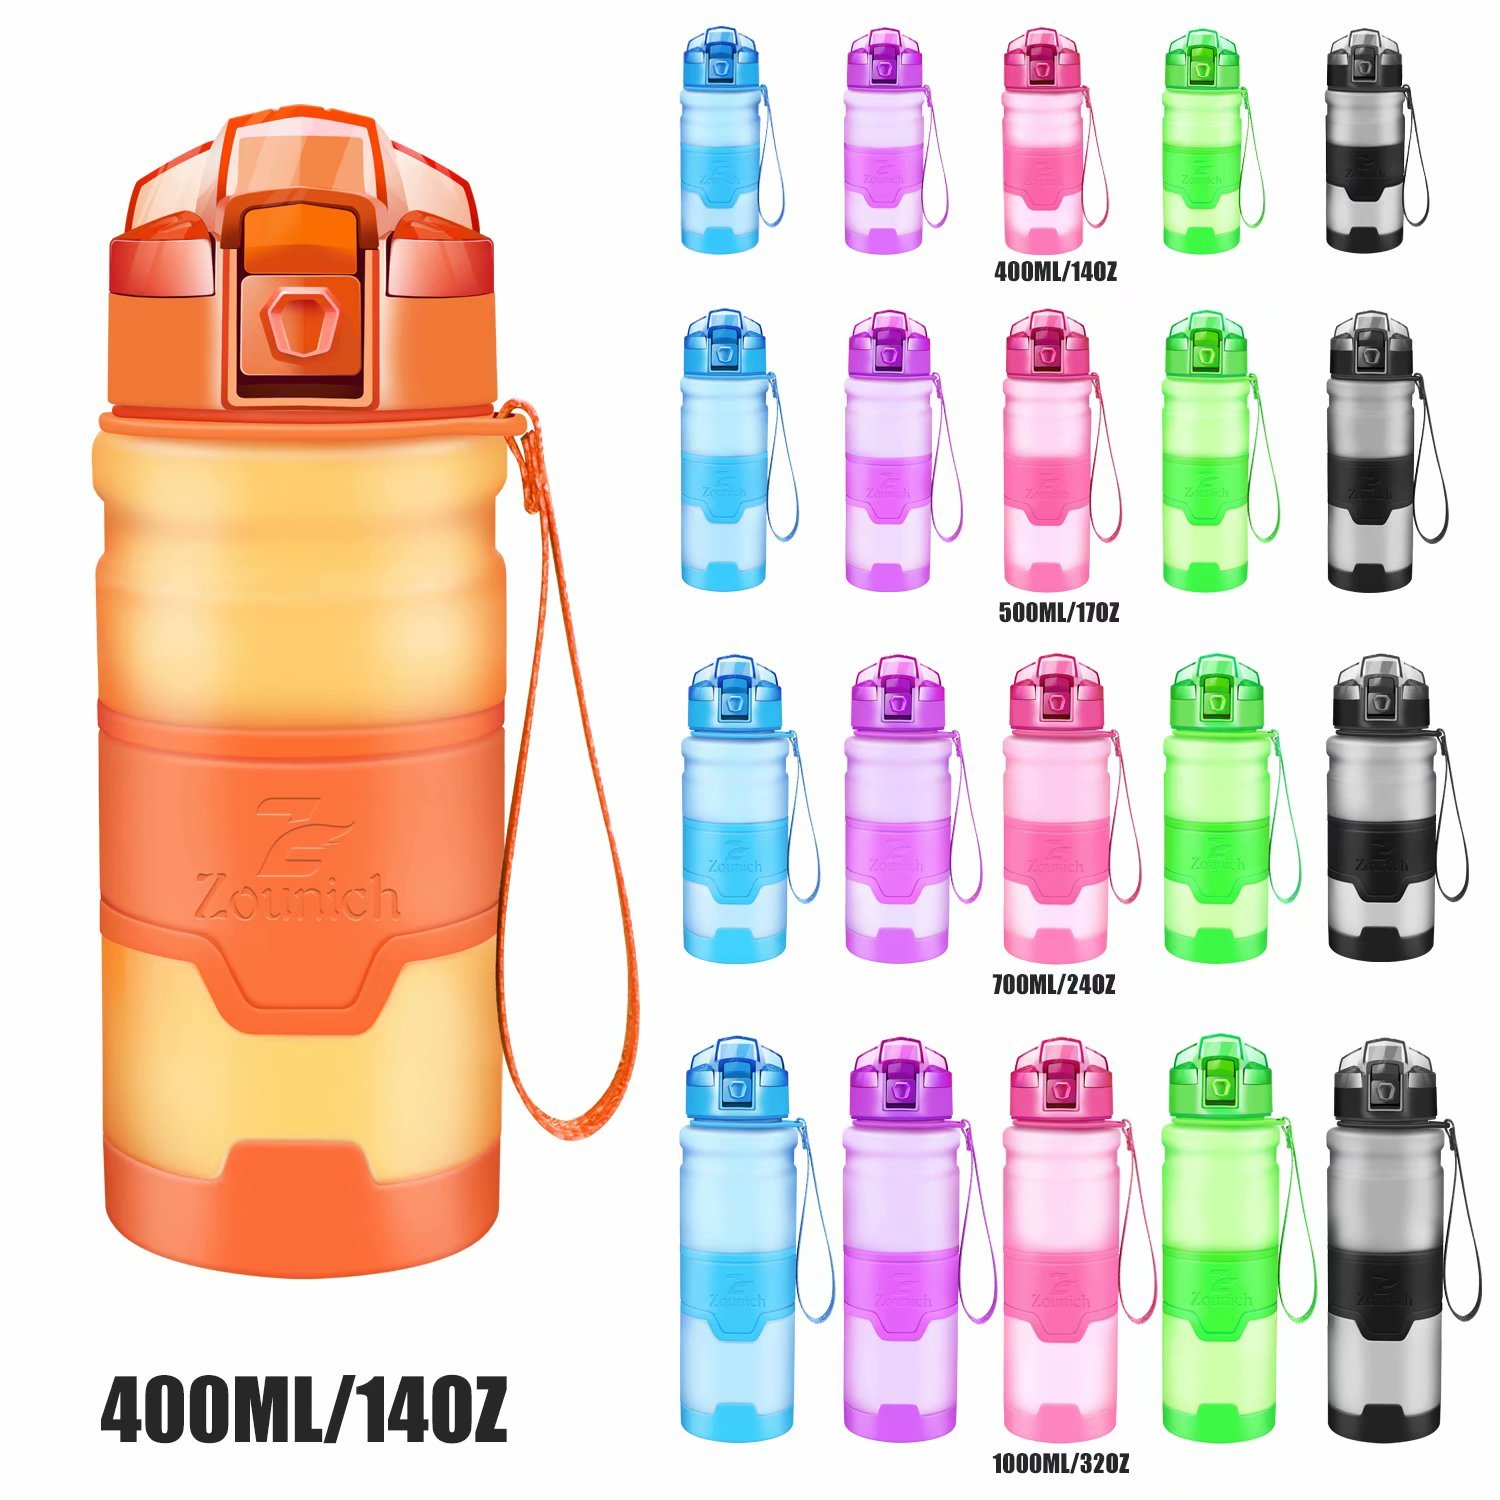 Sport Water Bottle Tritan Bpa Free Drinking Bottles For Outdoor,Bike Cycling,Running,Camping,Gym,Yoga,Kids,Unisex 400ml/500ml/700ml/32oz Fruit Filter Flip Top Opens With 1 Click Reusable Leakproof Lid